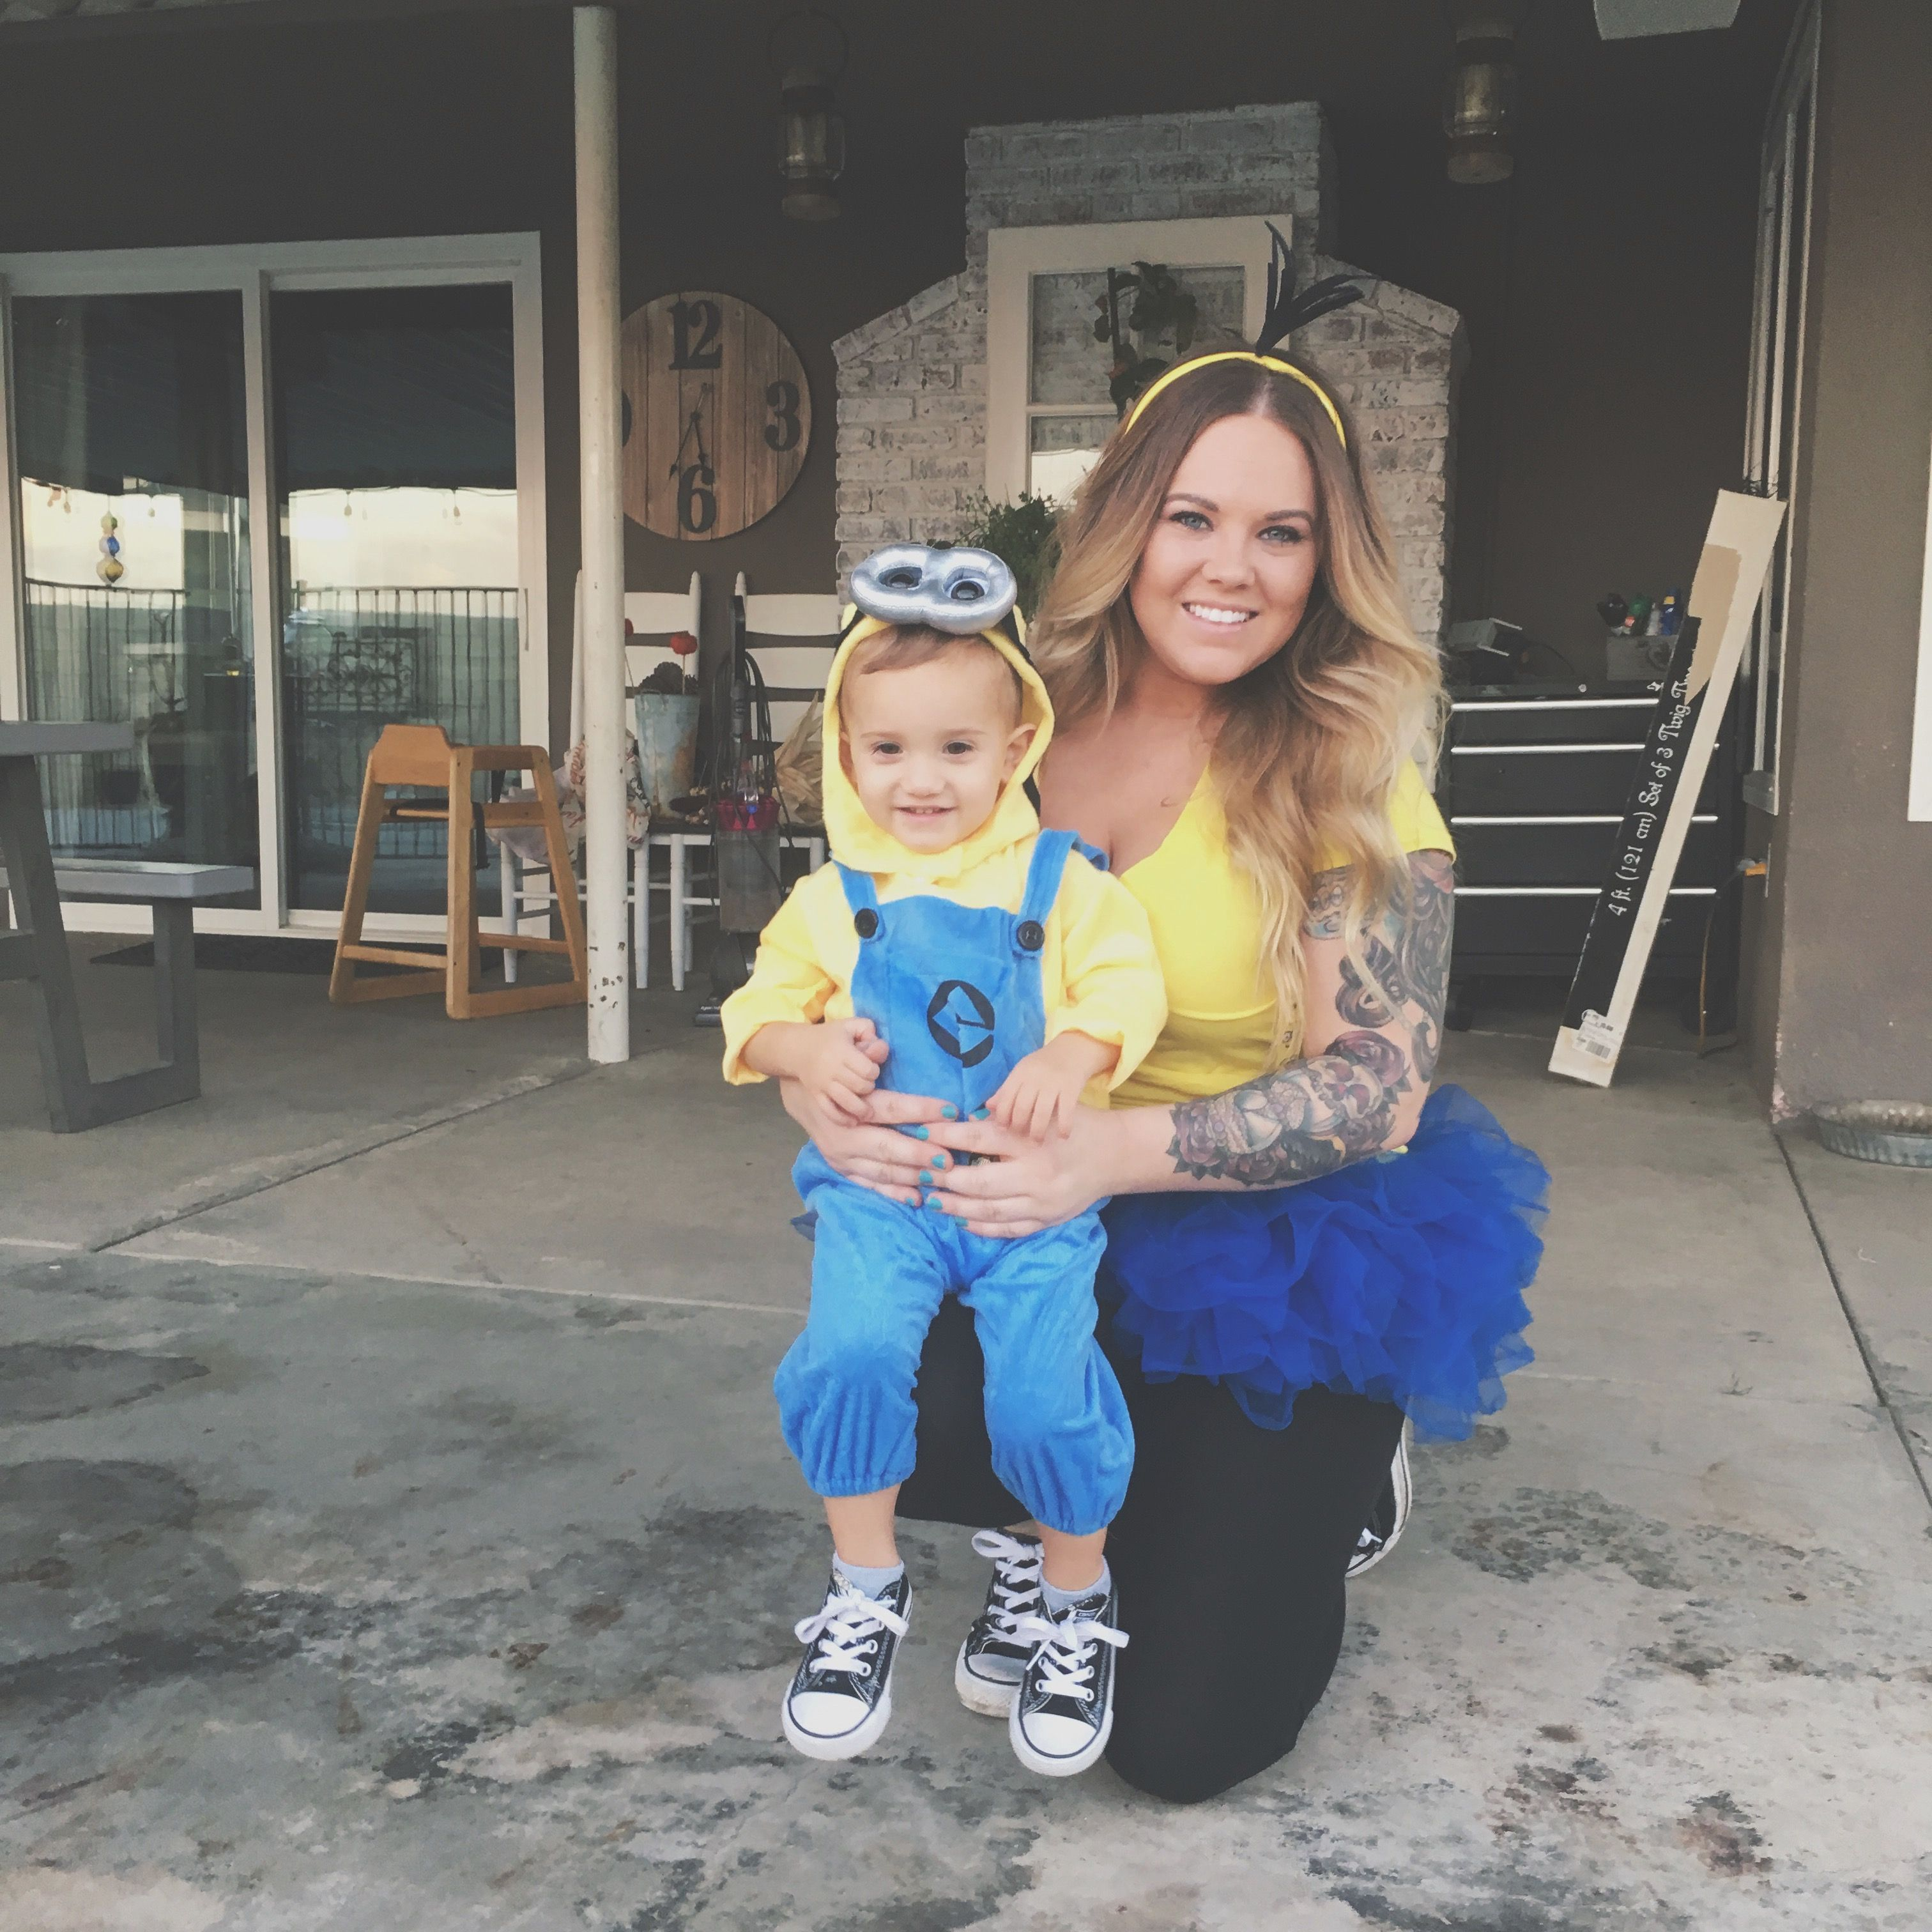 Mom And Baby Boy Halloween Costume Ideas.Mom And Son Halloween Costume Good Enough For Pinterest